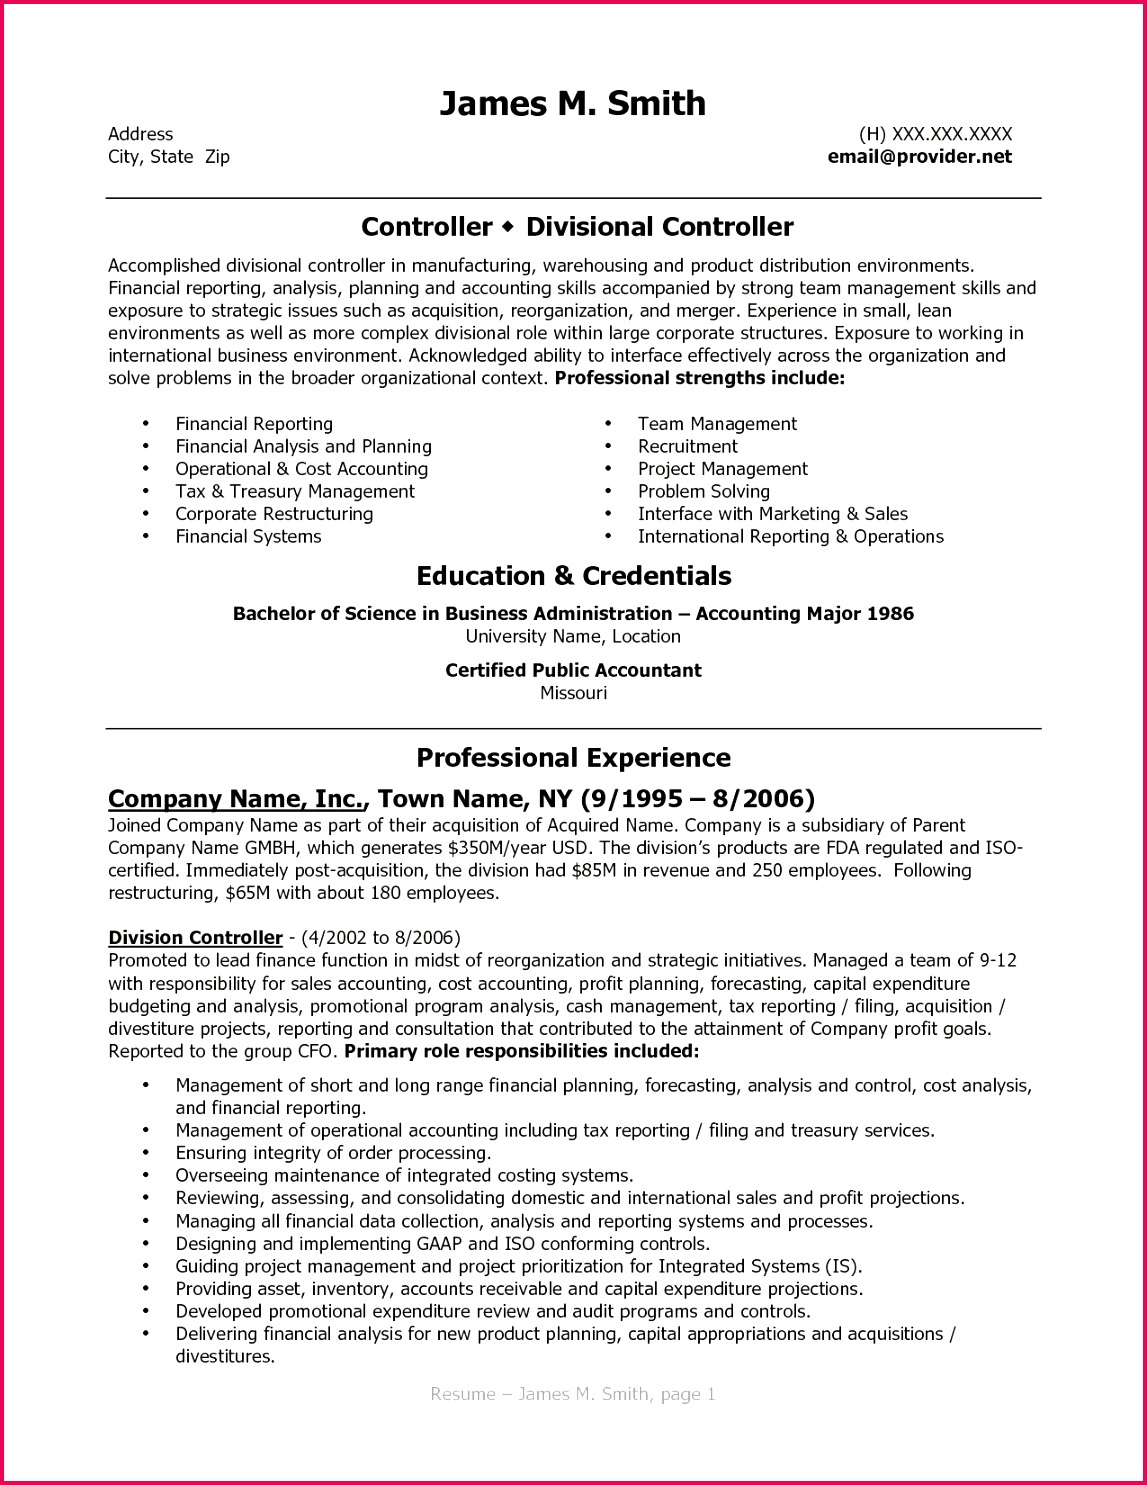 General Ledger Accountant Resume Sample New Cfo Resume Template Inspirational Actor Resumes 0d Financial